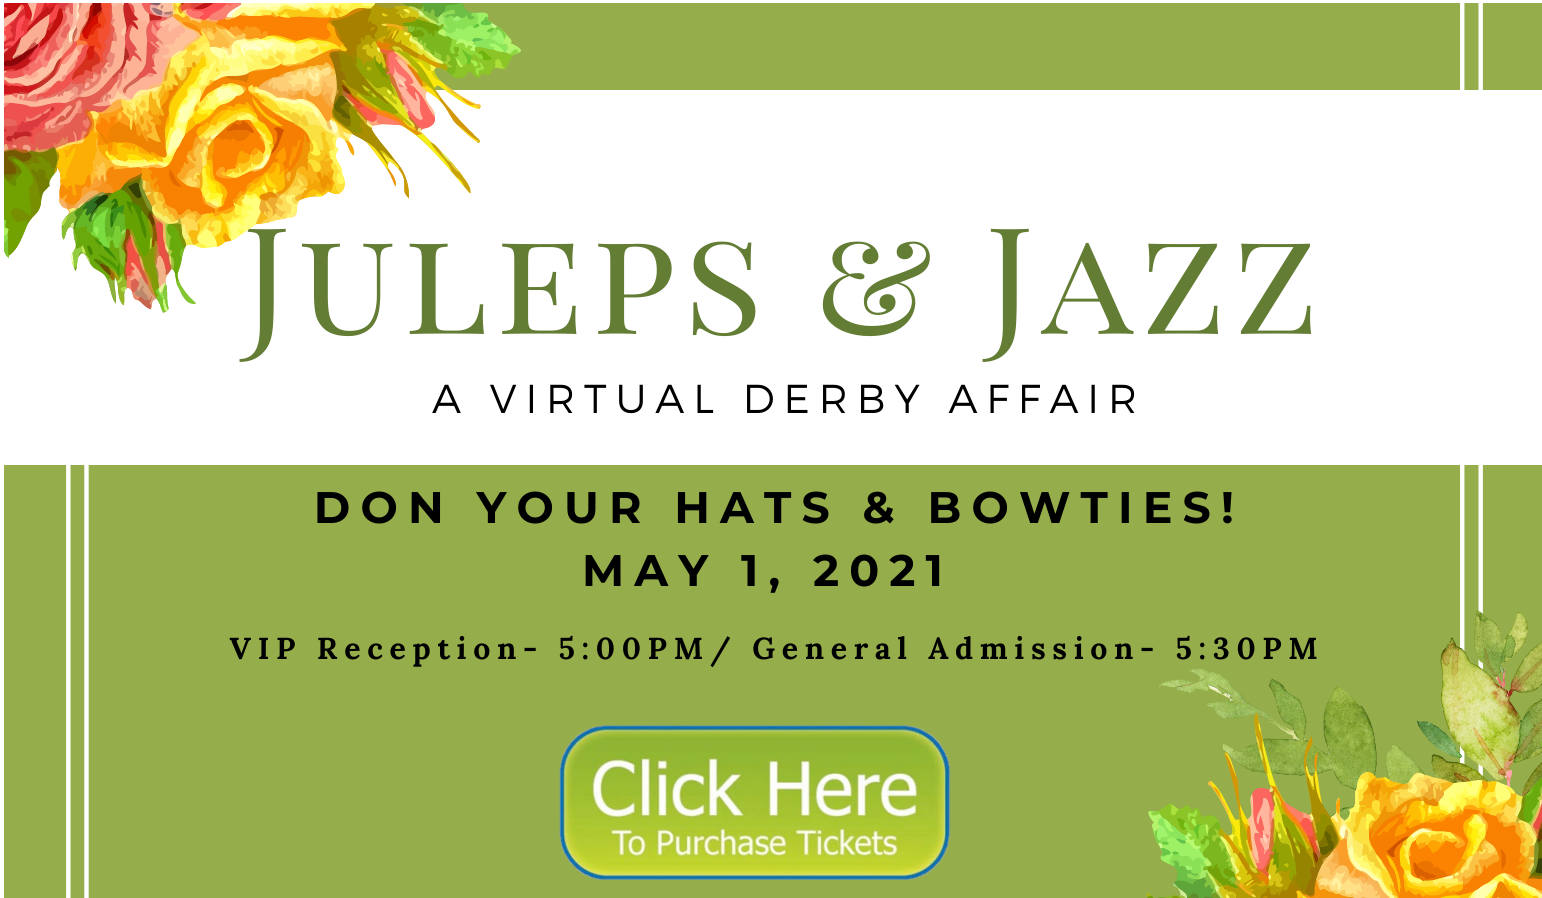 Juleps & Jazz Announcement